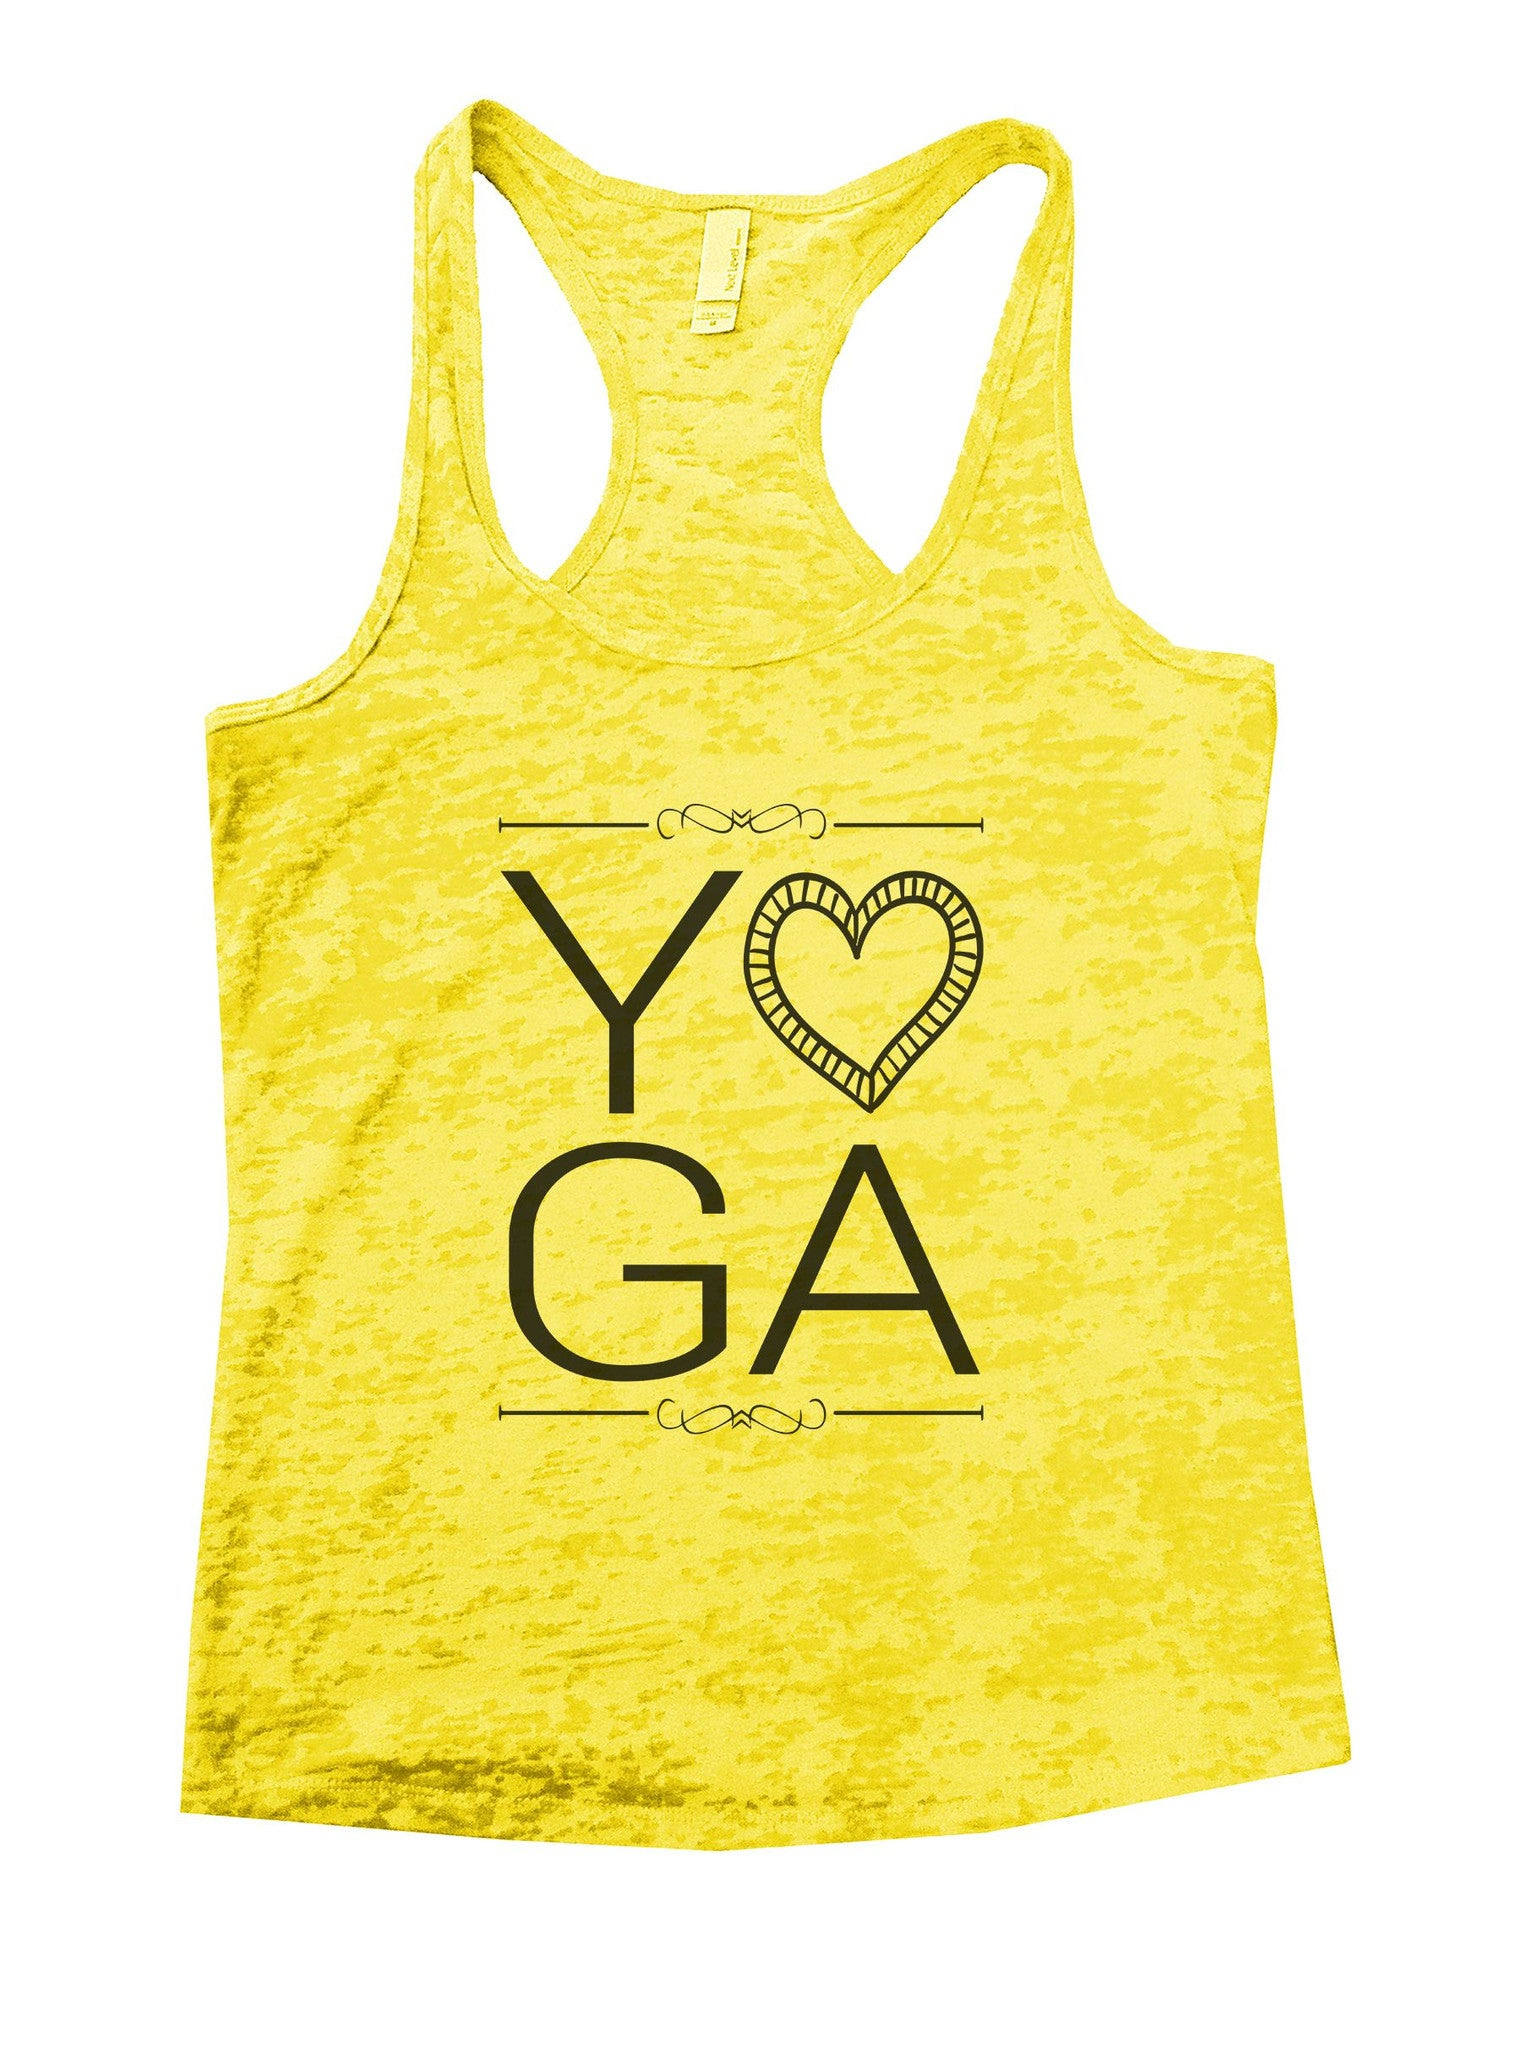 Yoga Burnout Tank Top By BurnoutTankTops.com - 838 - Funny Shirts Tank Tops Burnouts and Triblends  - 7